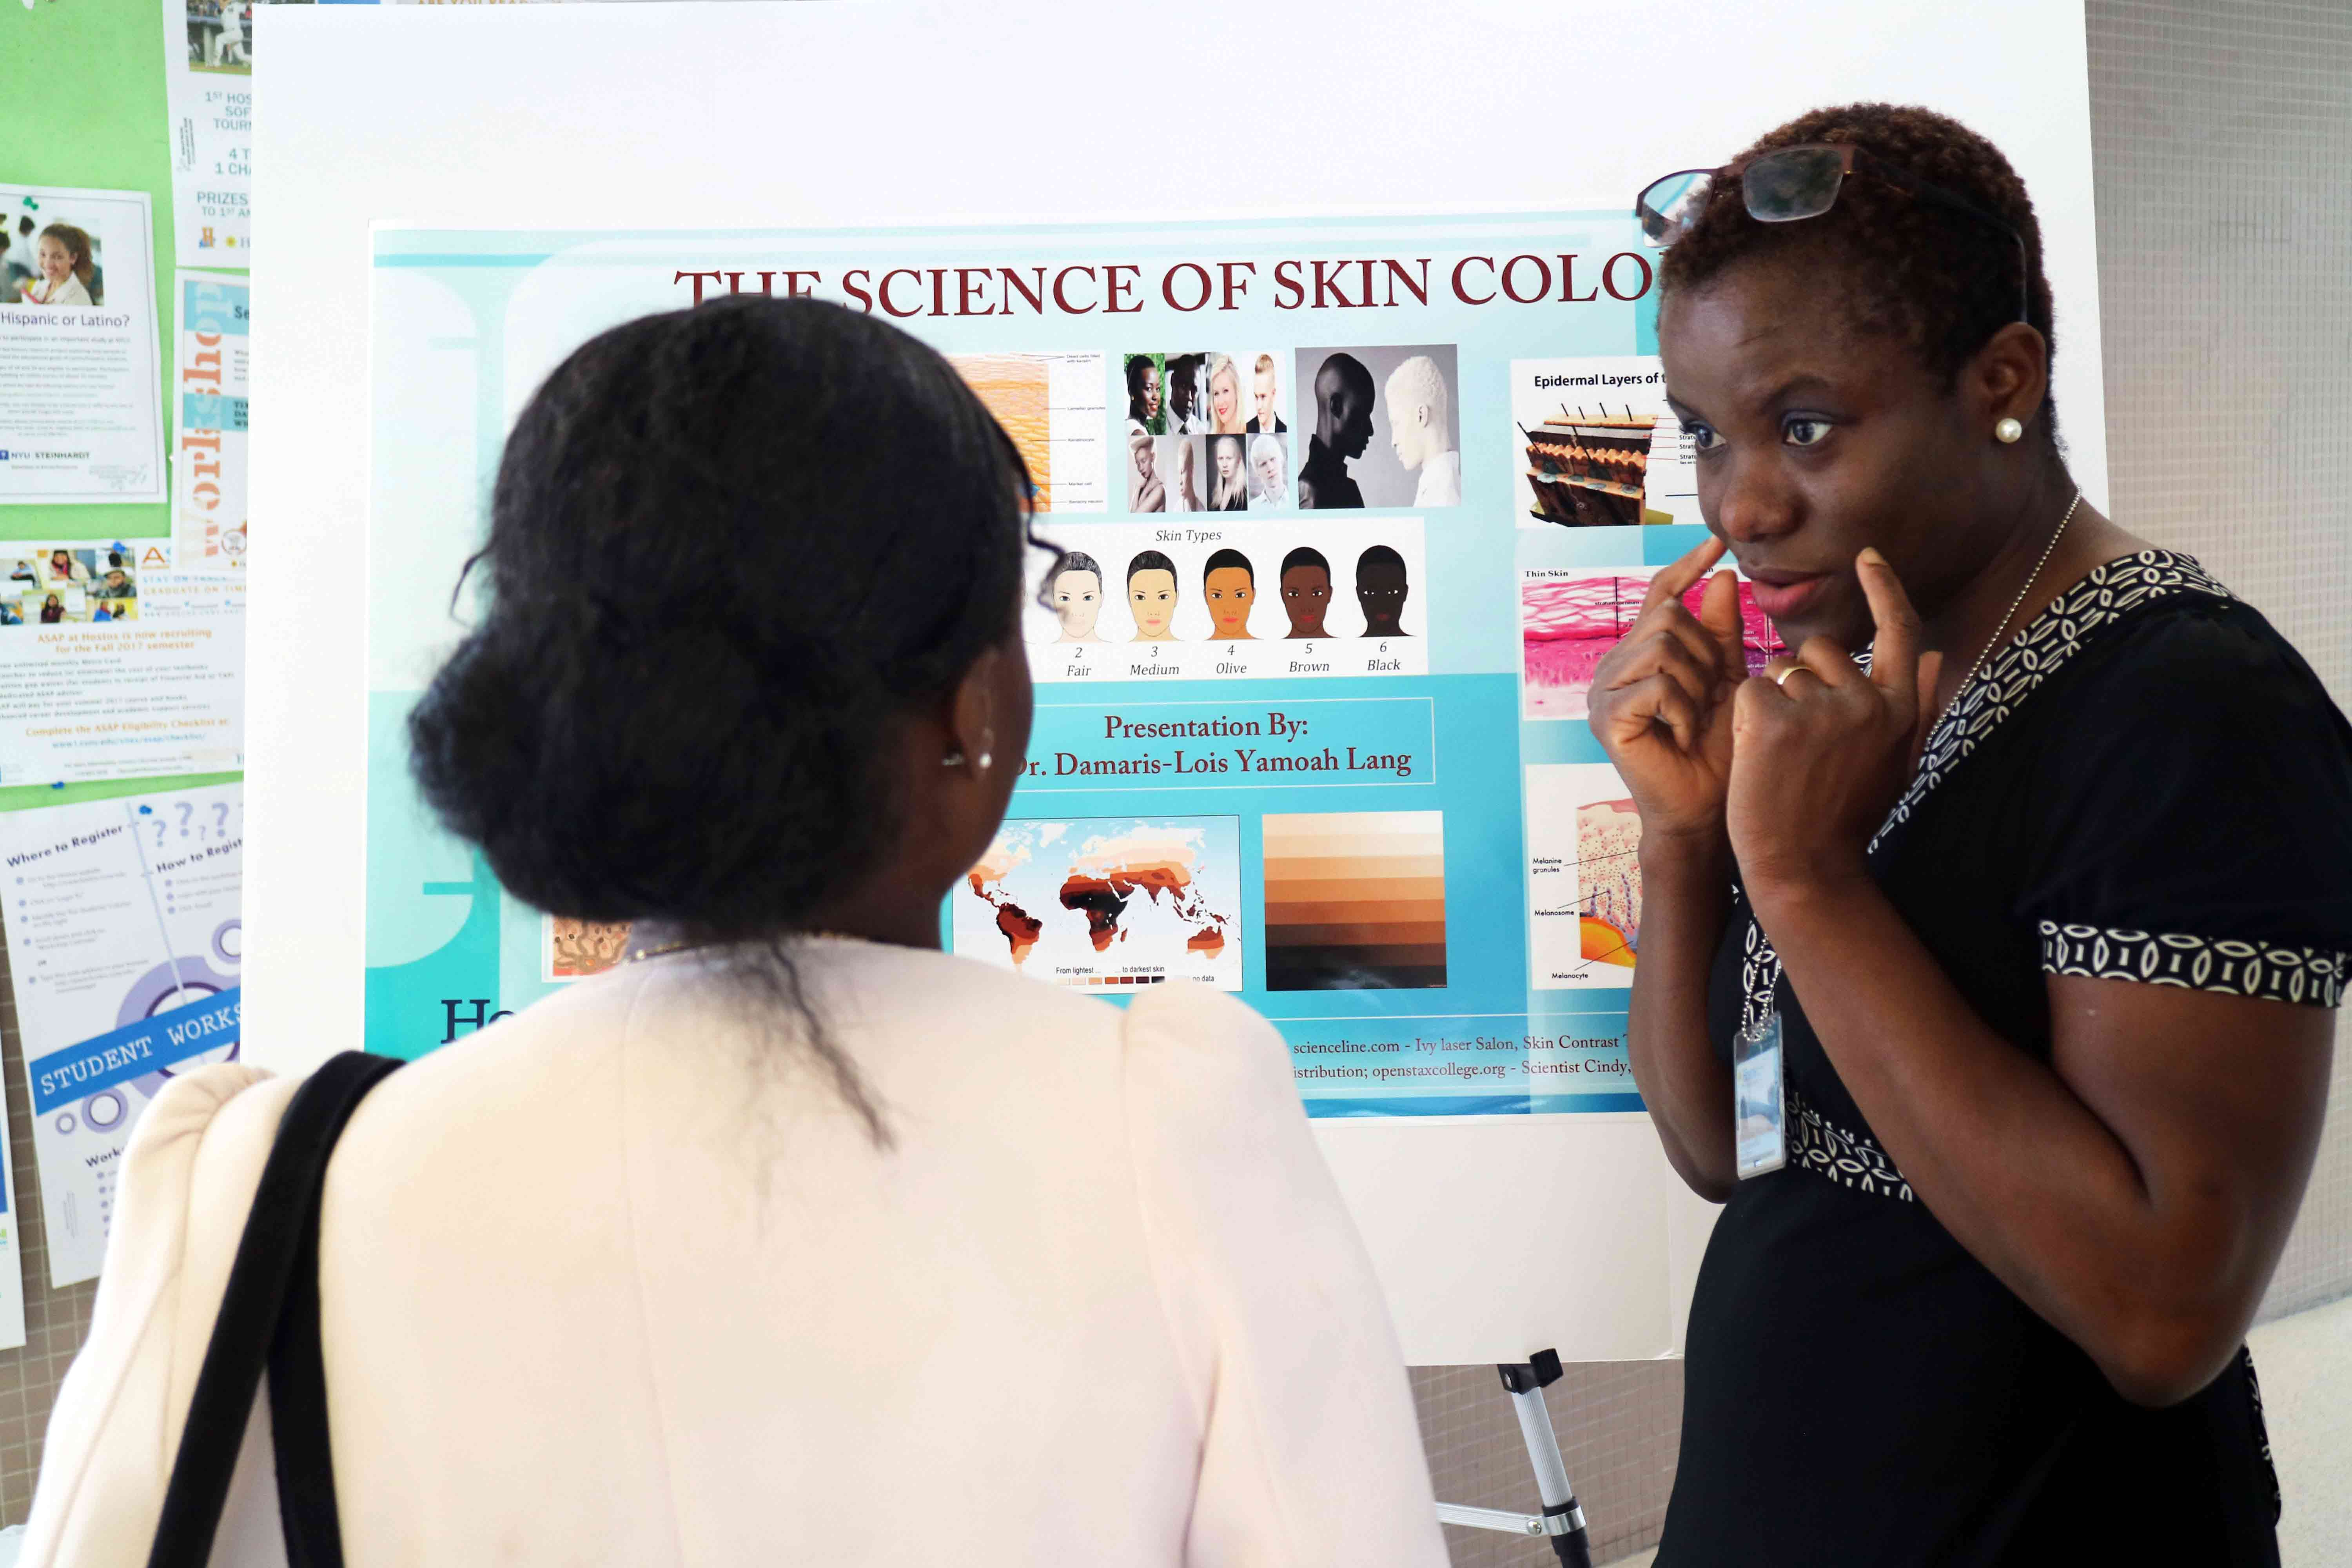 Teaching Day - The Science of skin color Prof. damaris